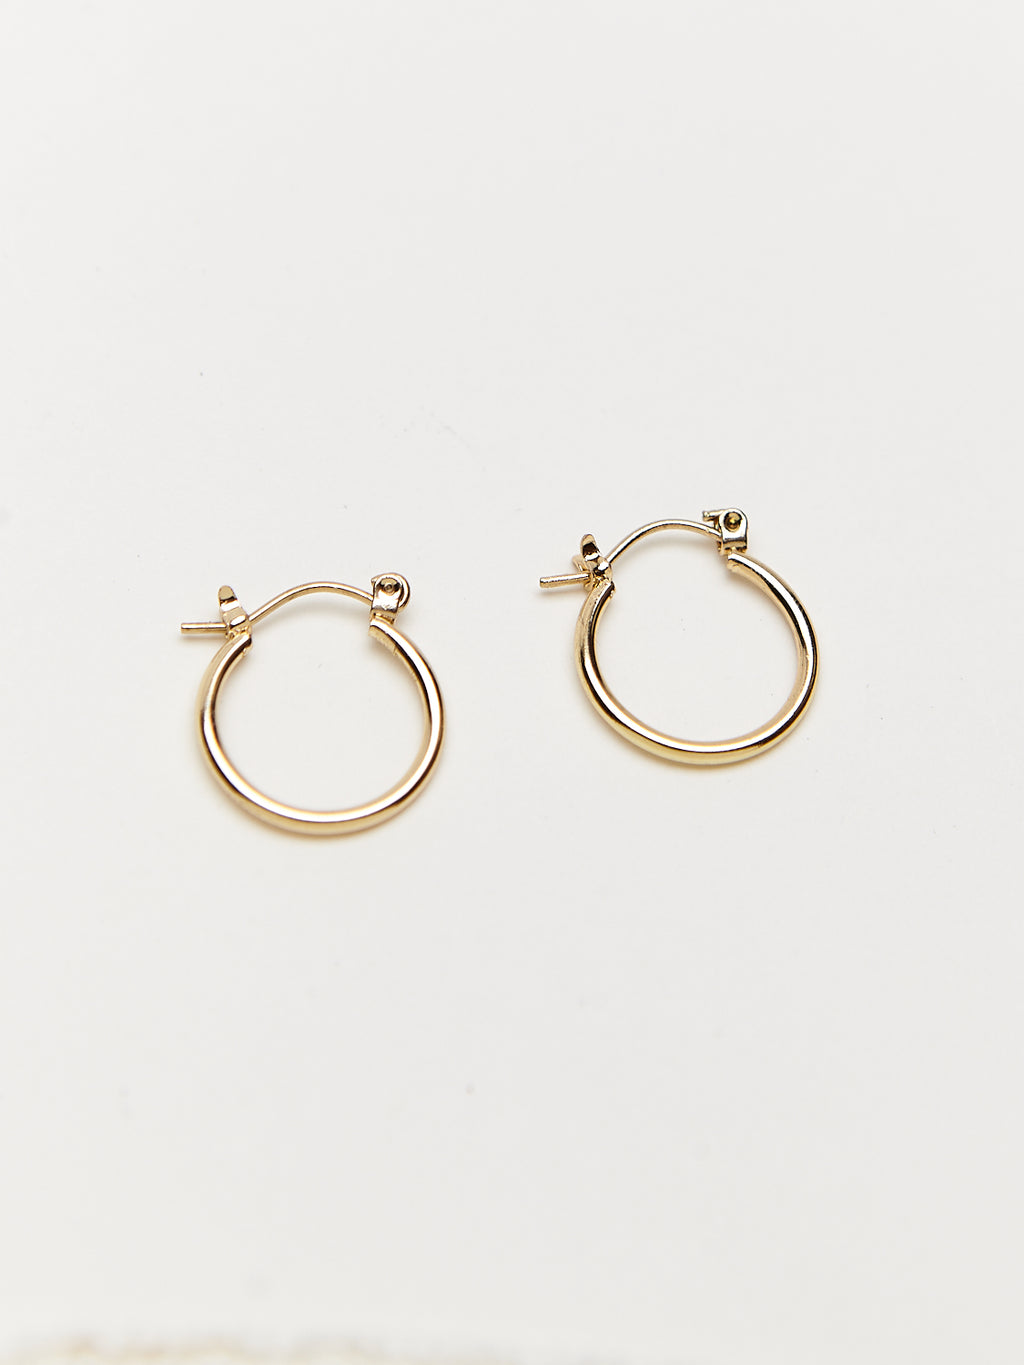 Detail shot of gold hoop earrings